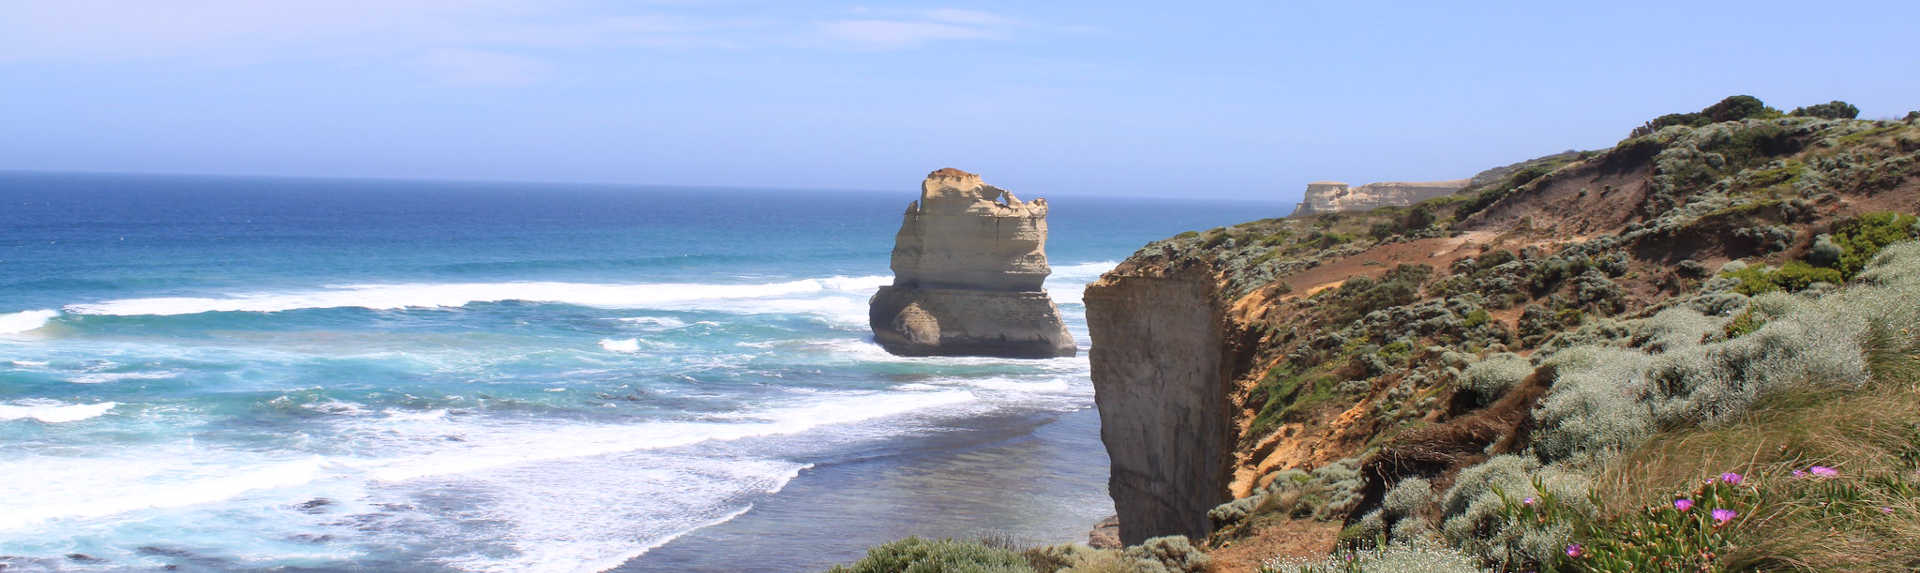 How long does it take to get to 12 Apostles from Melbourne?